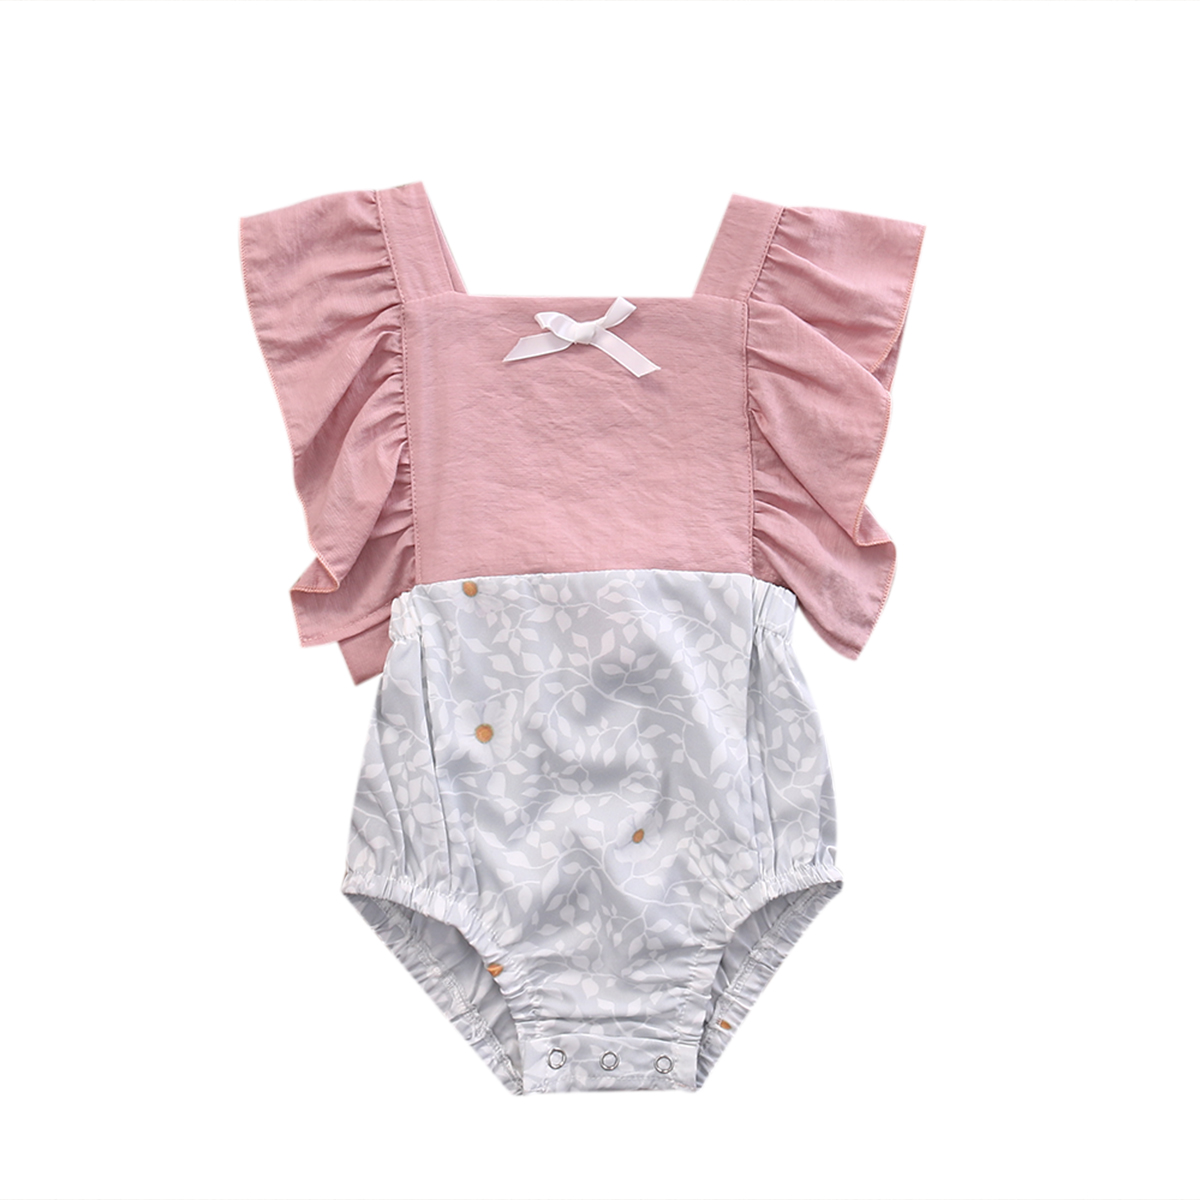 Infant Baby Girls Floral Ruffle Bodysuit Babies Girl Flower Patchwork Playsuit Clothes Outfits 0-24M Clothing